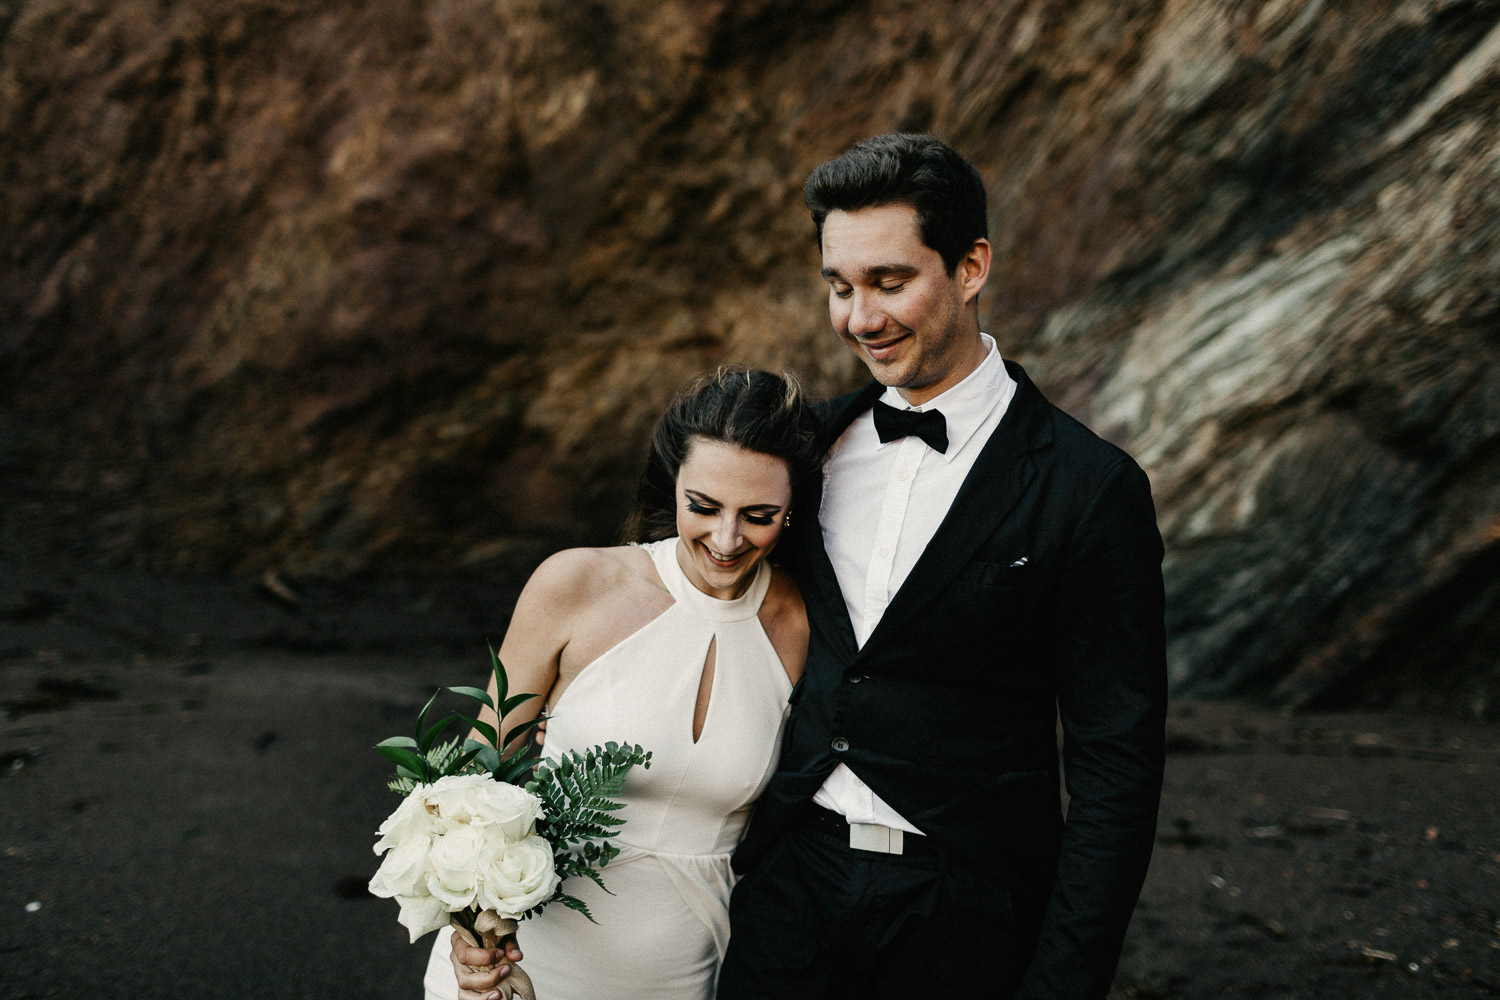 Image of groom holds bride and smiles together on beach